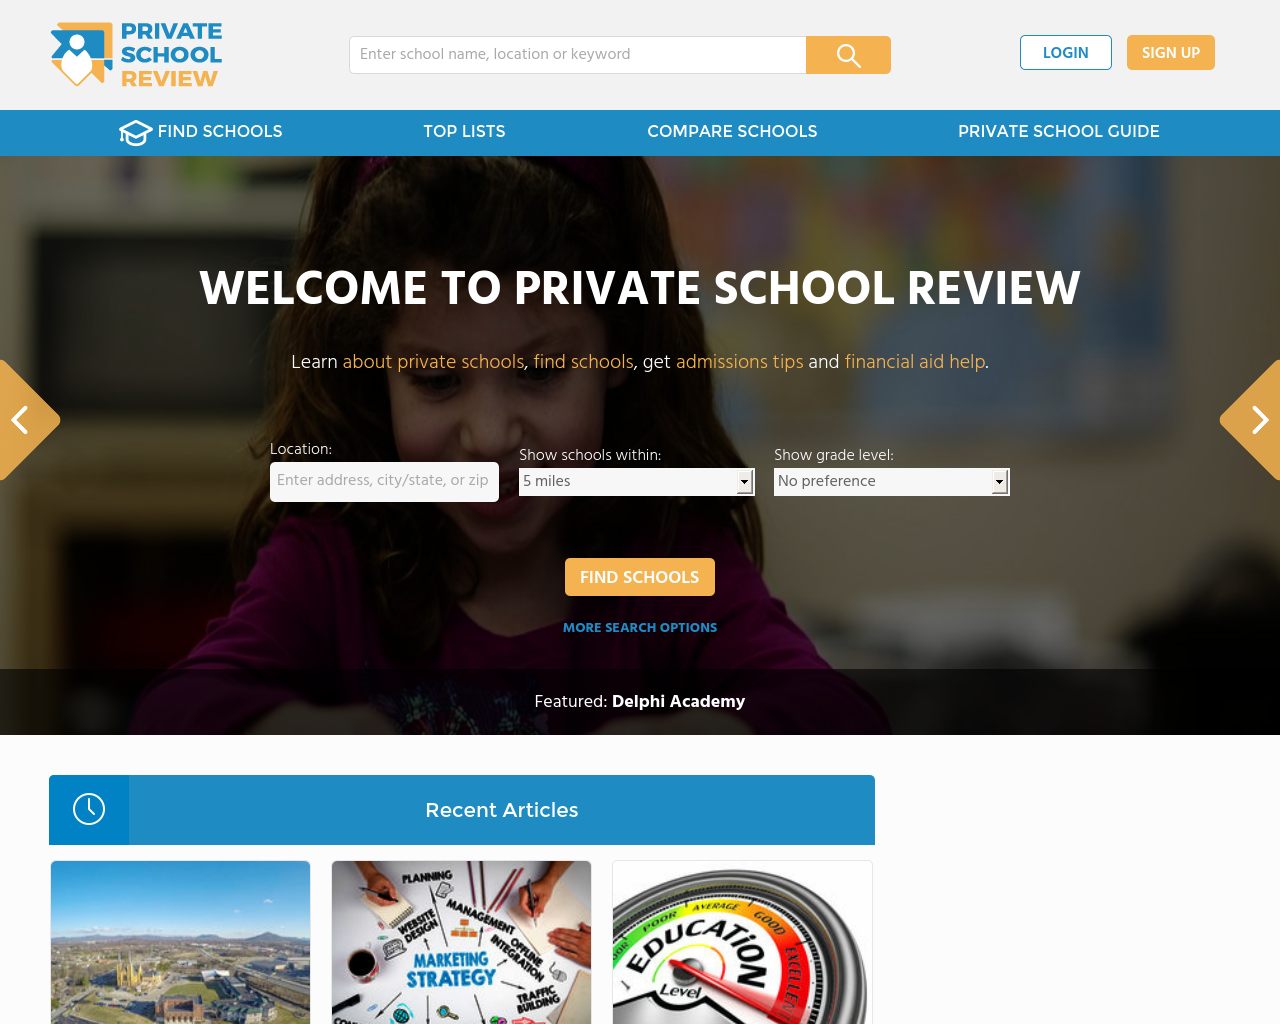 Private-School-Review-Advertising-Reviews-Pricing